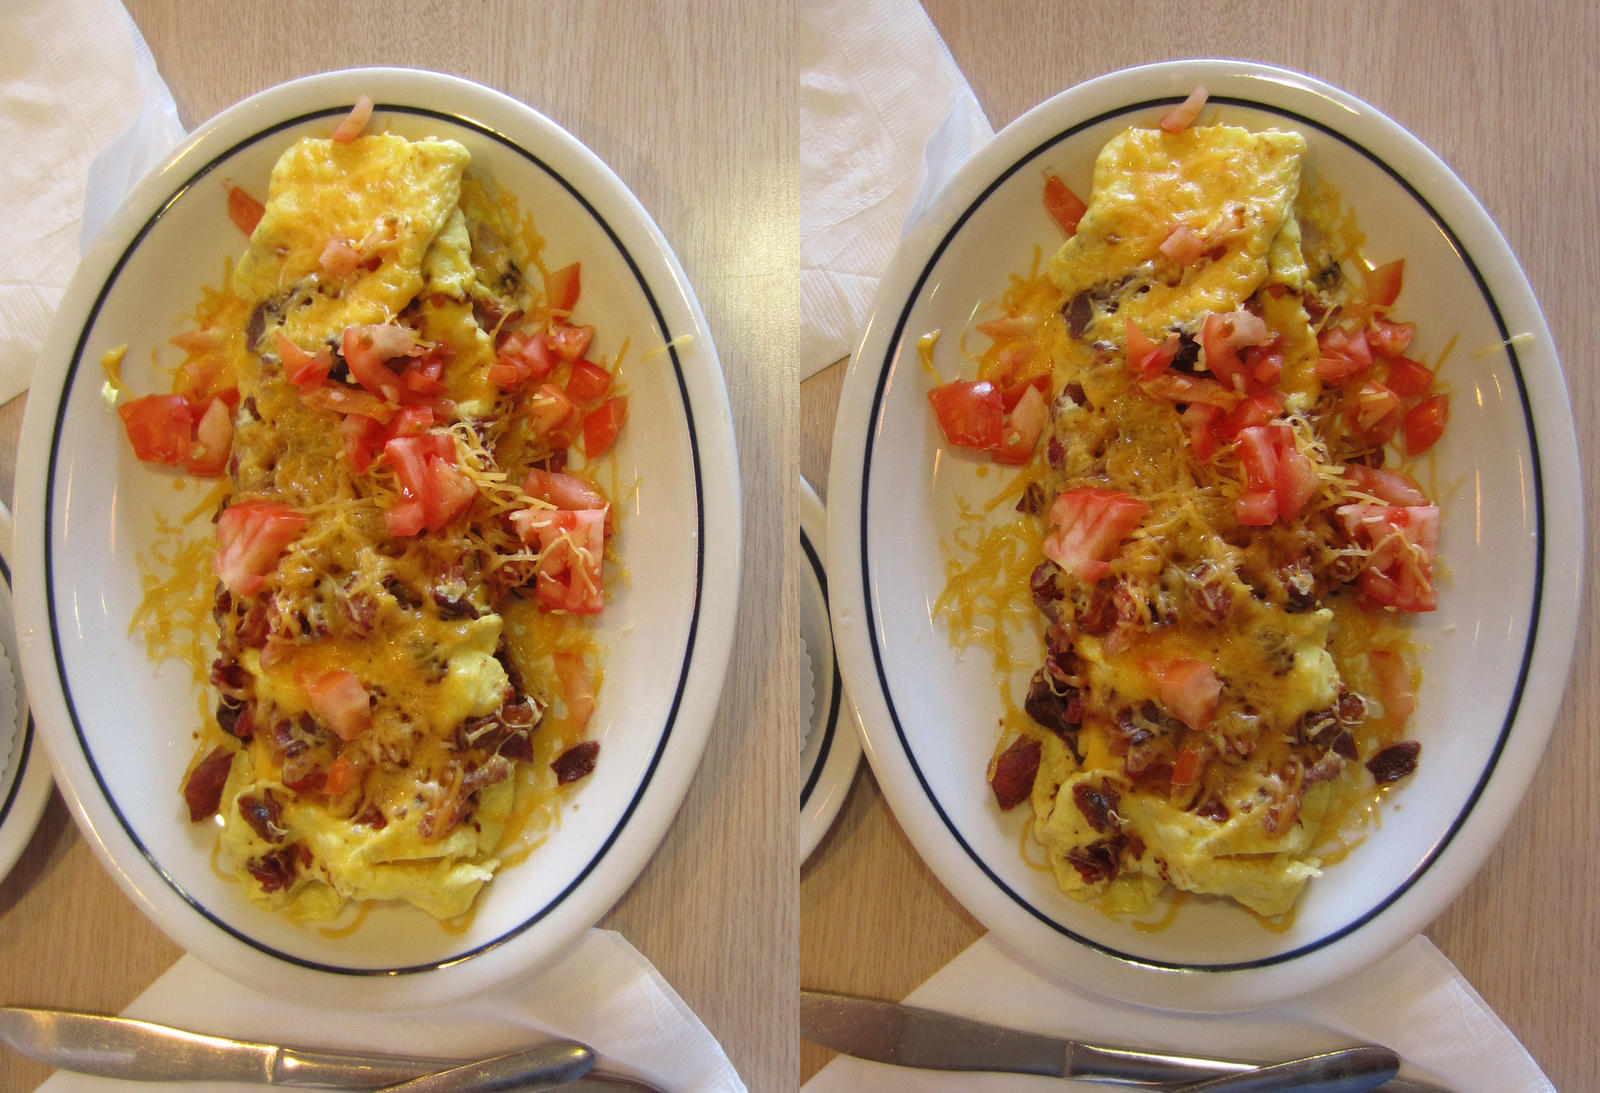 Stereograph - Omelet by alanbecker